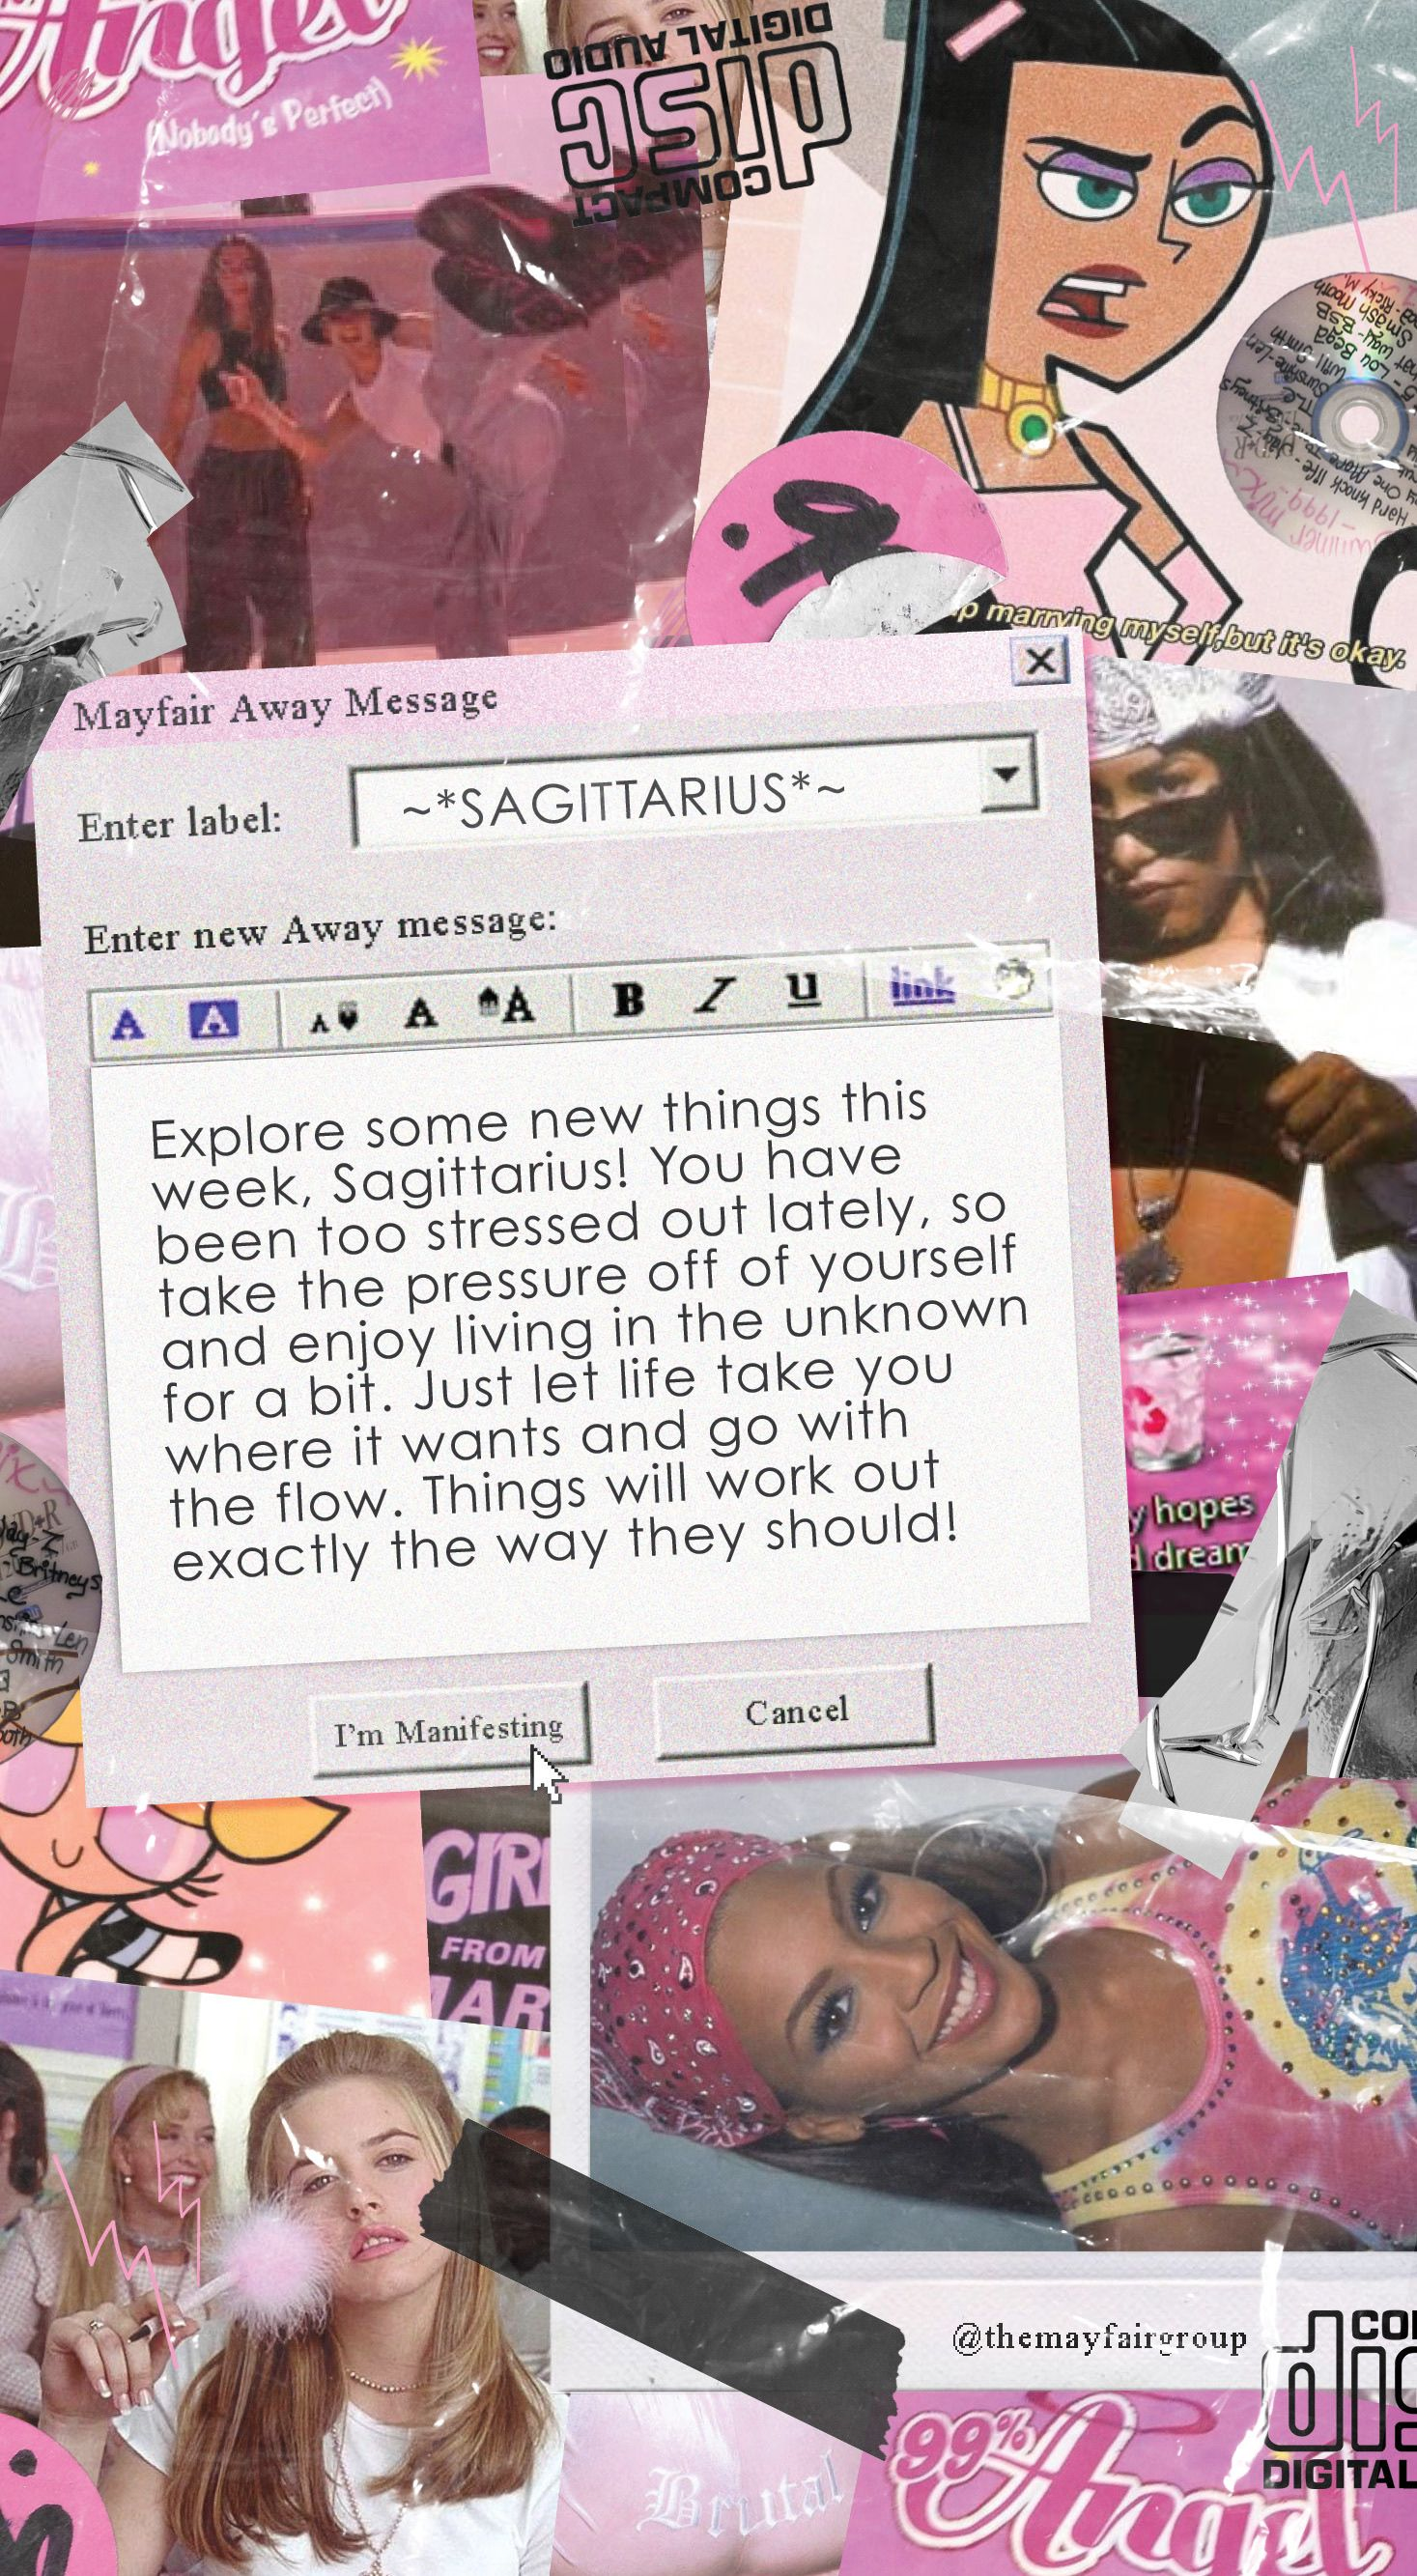 Pin By The Mayfair Group Llc On Horoscopes In 2020 Aesthetic Iphone Wallpaper Bad Girl Aesthetic Pink Aesthetic